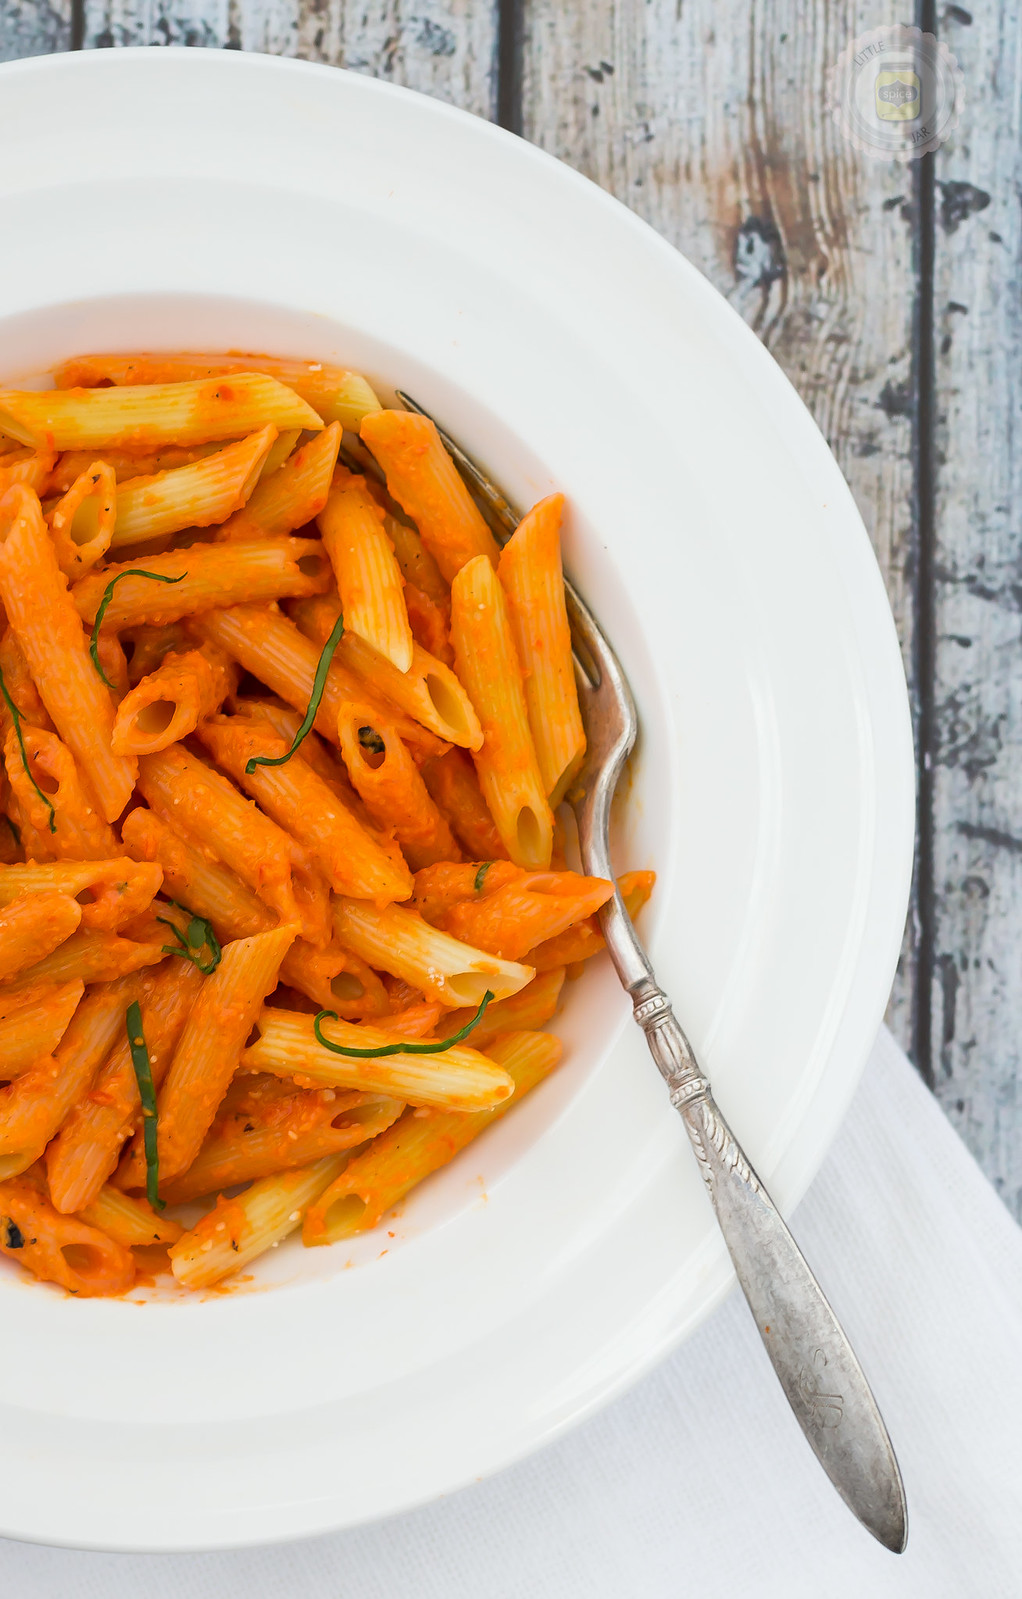 PENNE ALLA ROASTED RED PEPPER SAUCE